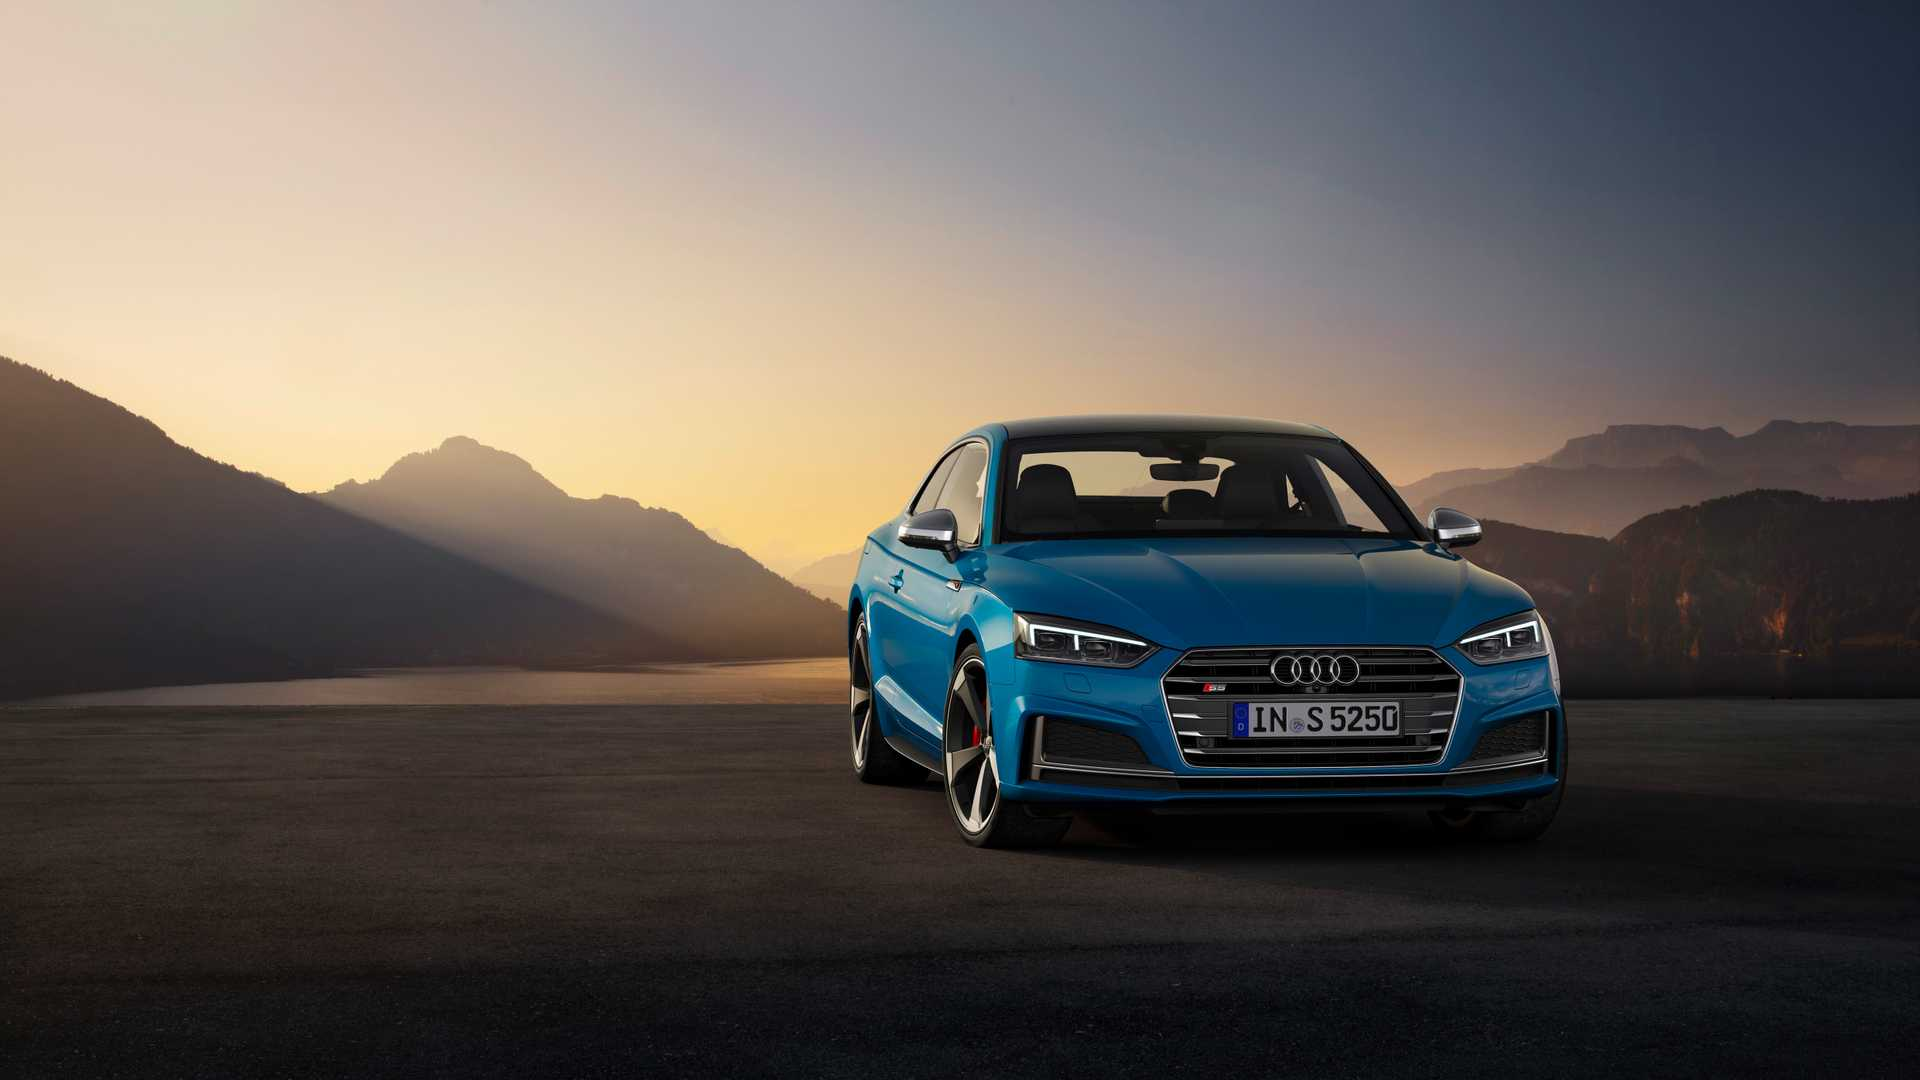 2019 Audi S5 Coupé TDI Front Wallpapers #14 of 17